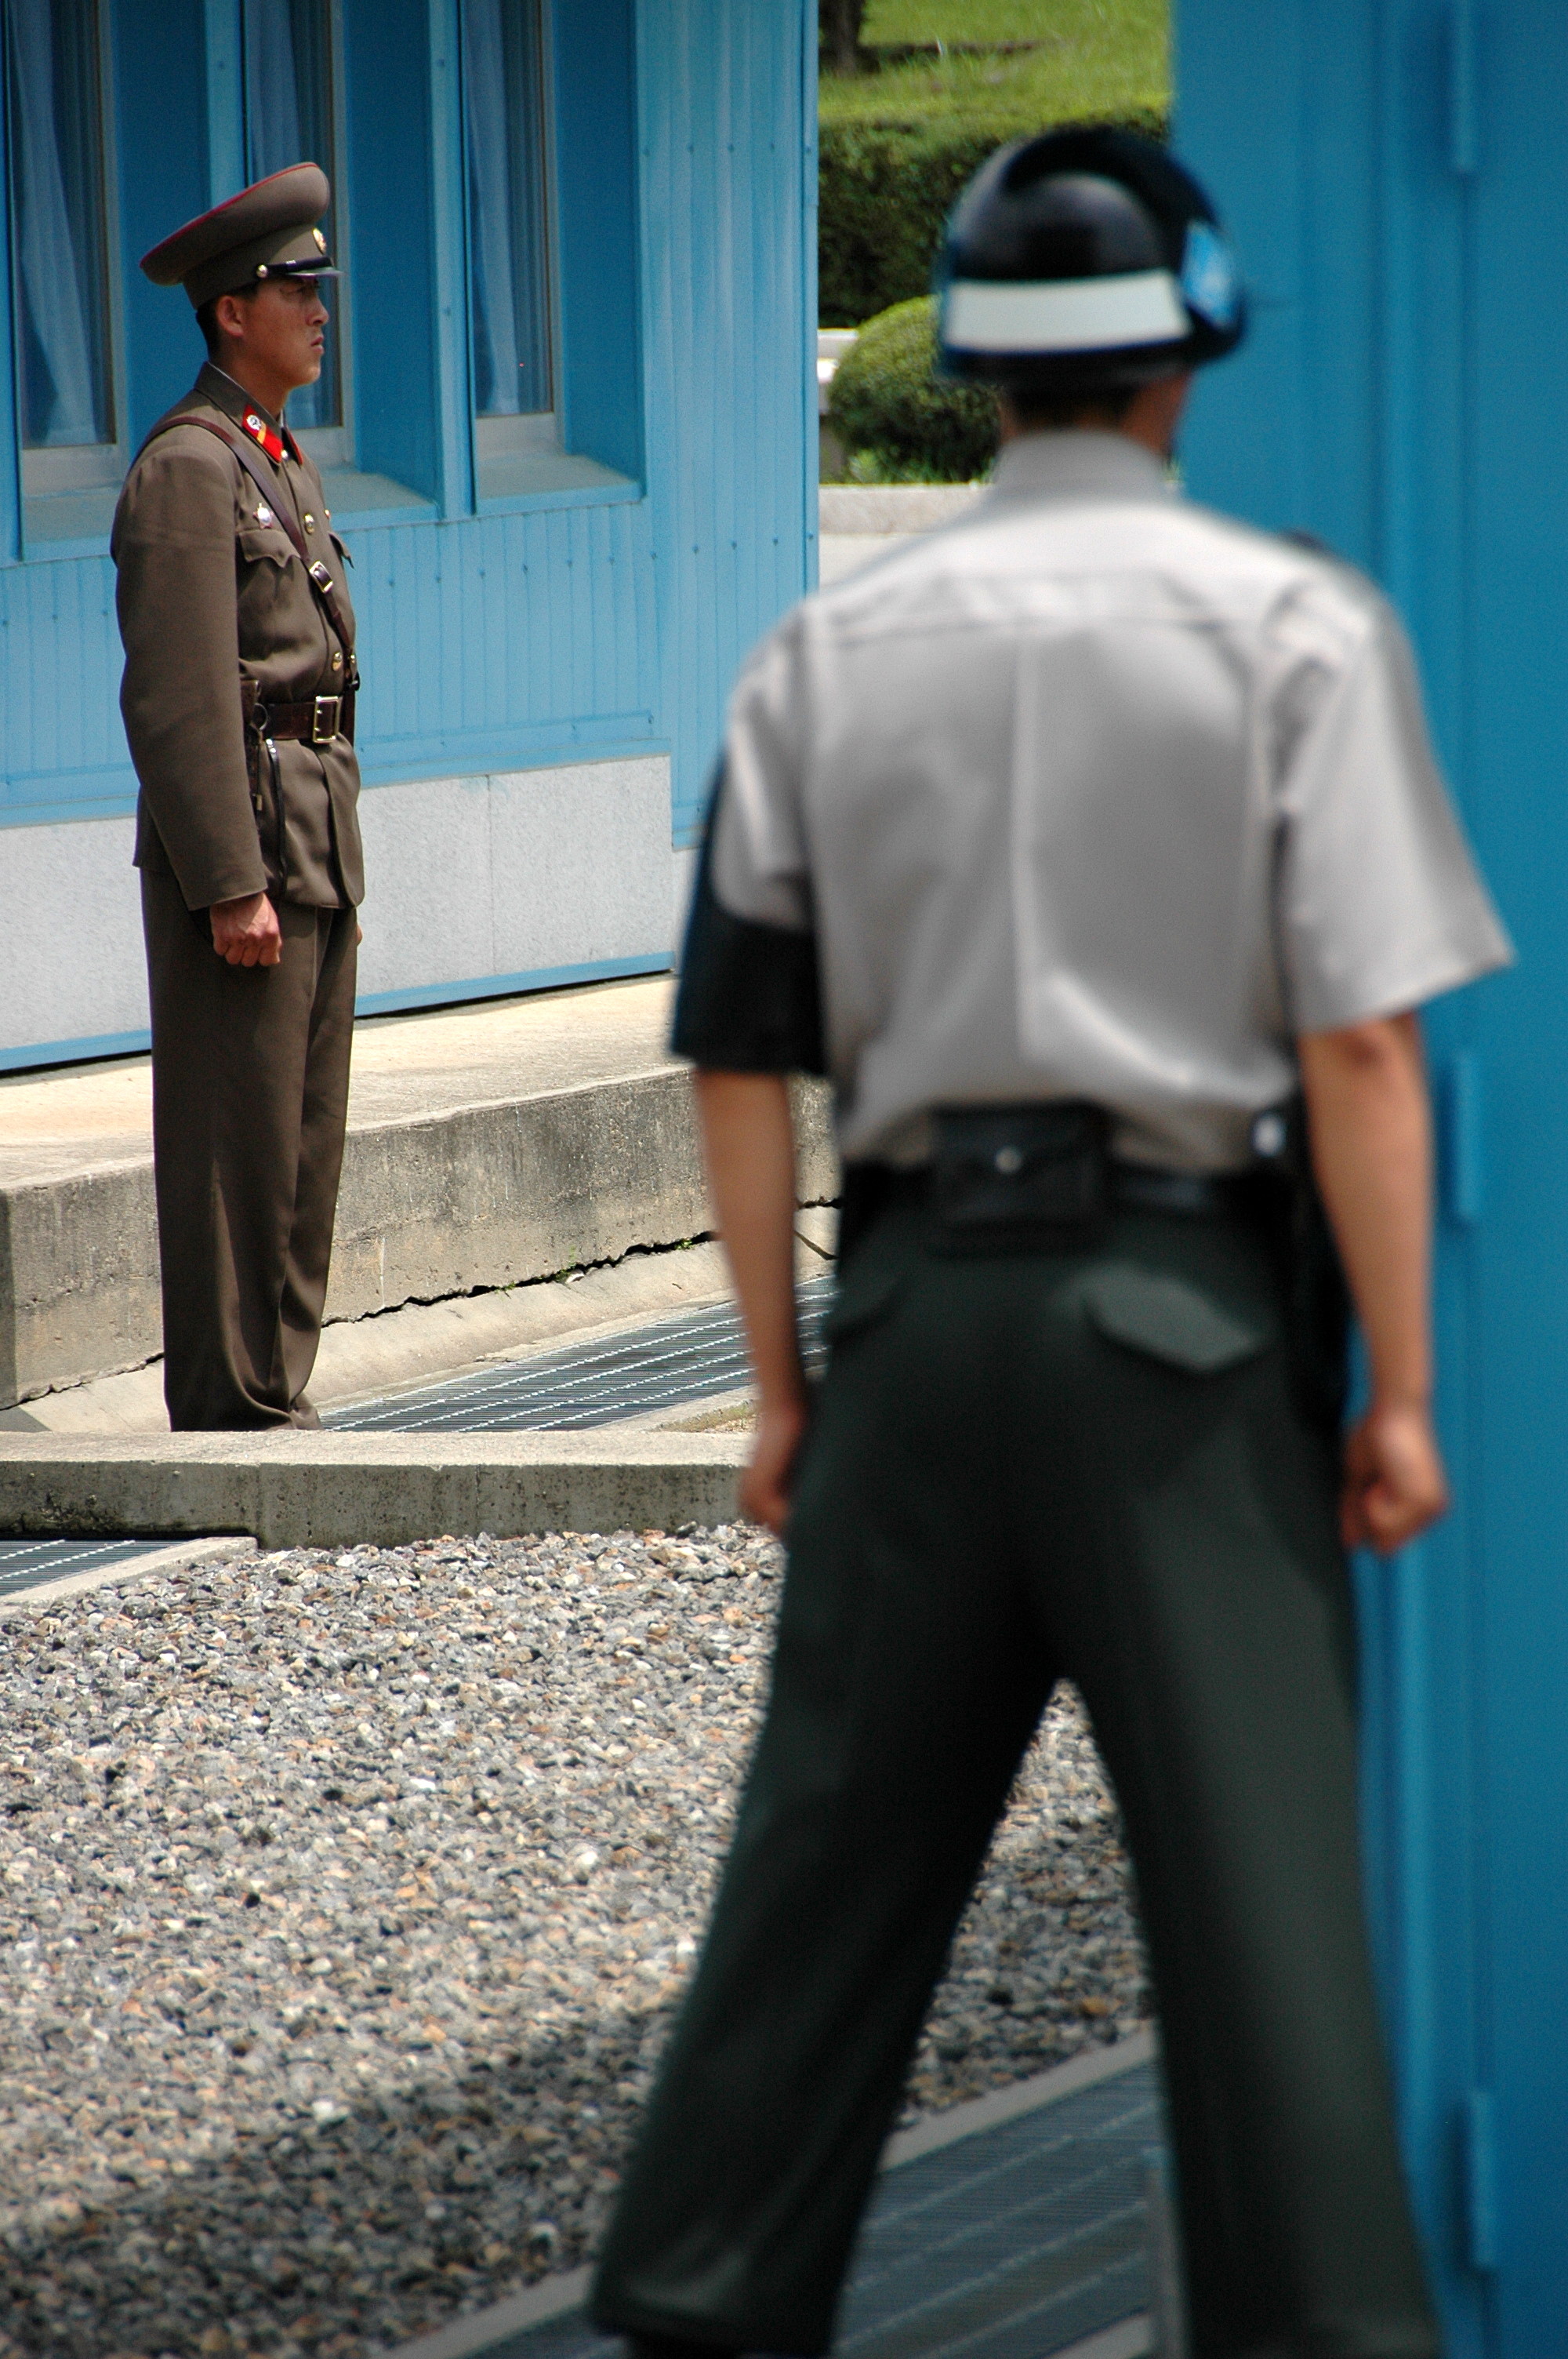 North and South Korean troops at Panmunjeom JSA